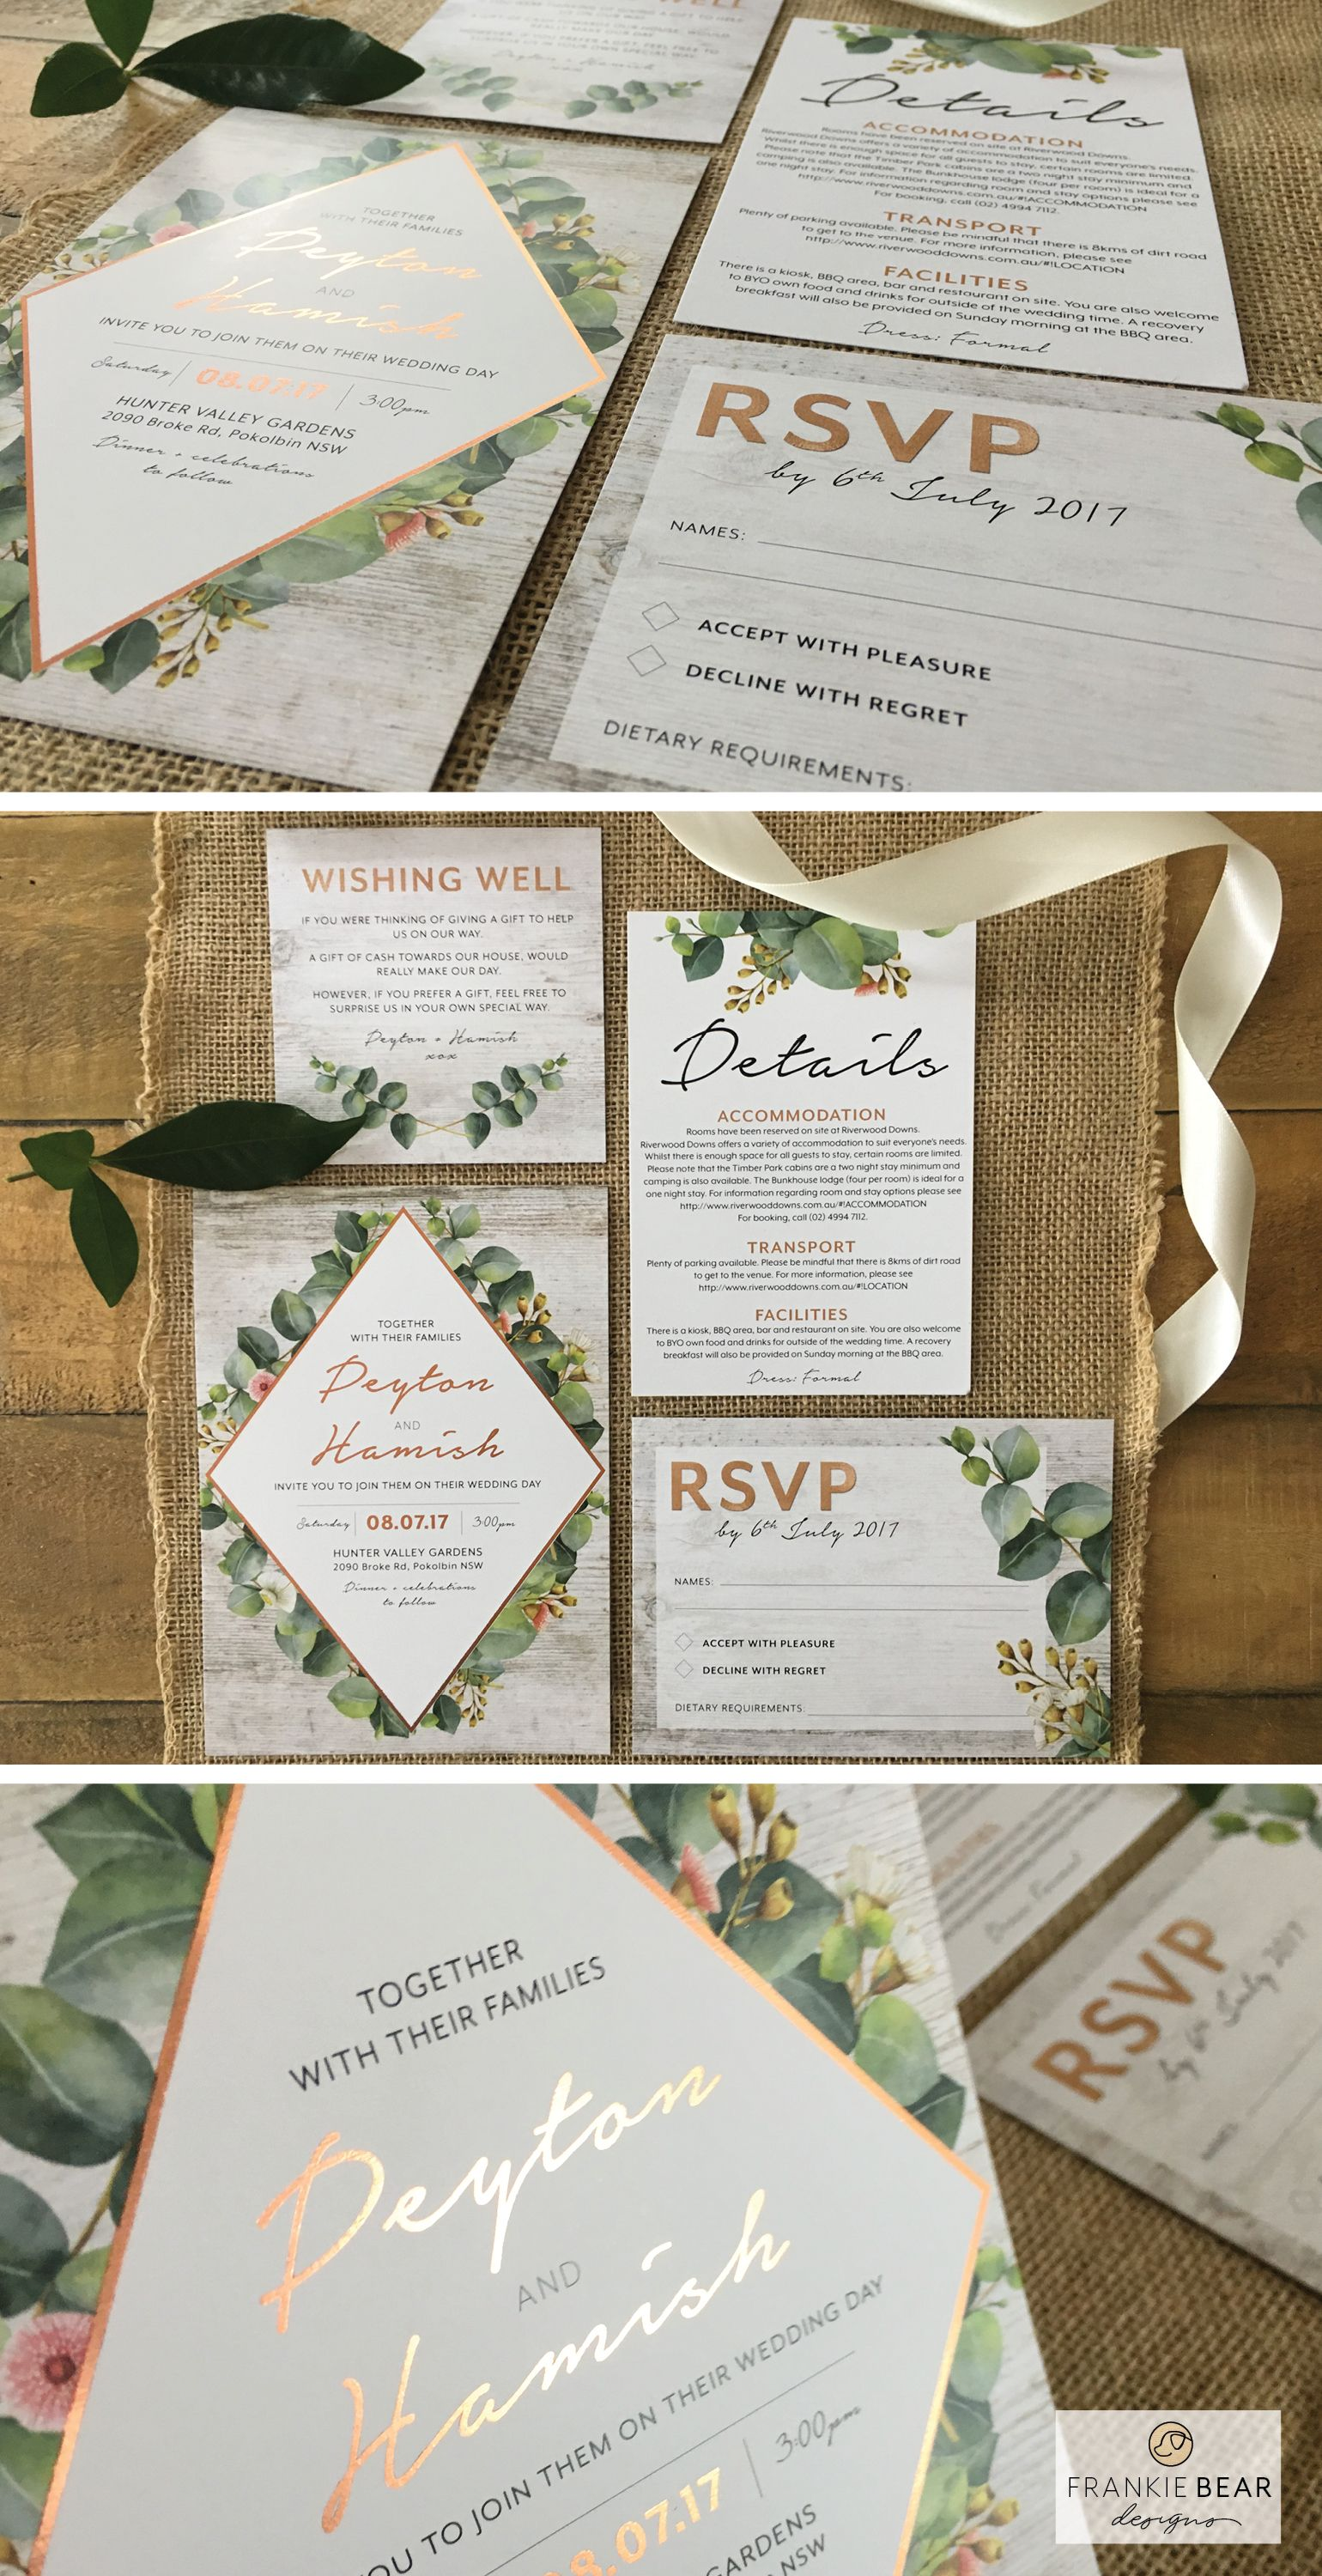 print yourself wedding invitations kit%0A Letterpress invitation  SAMPLE  wedding  engagement  save the date   australian gum tree  eucalyptus leaves  digital image letterpress text    Letterpress